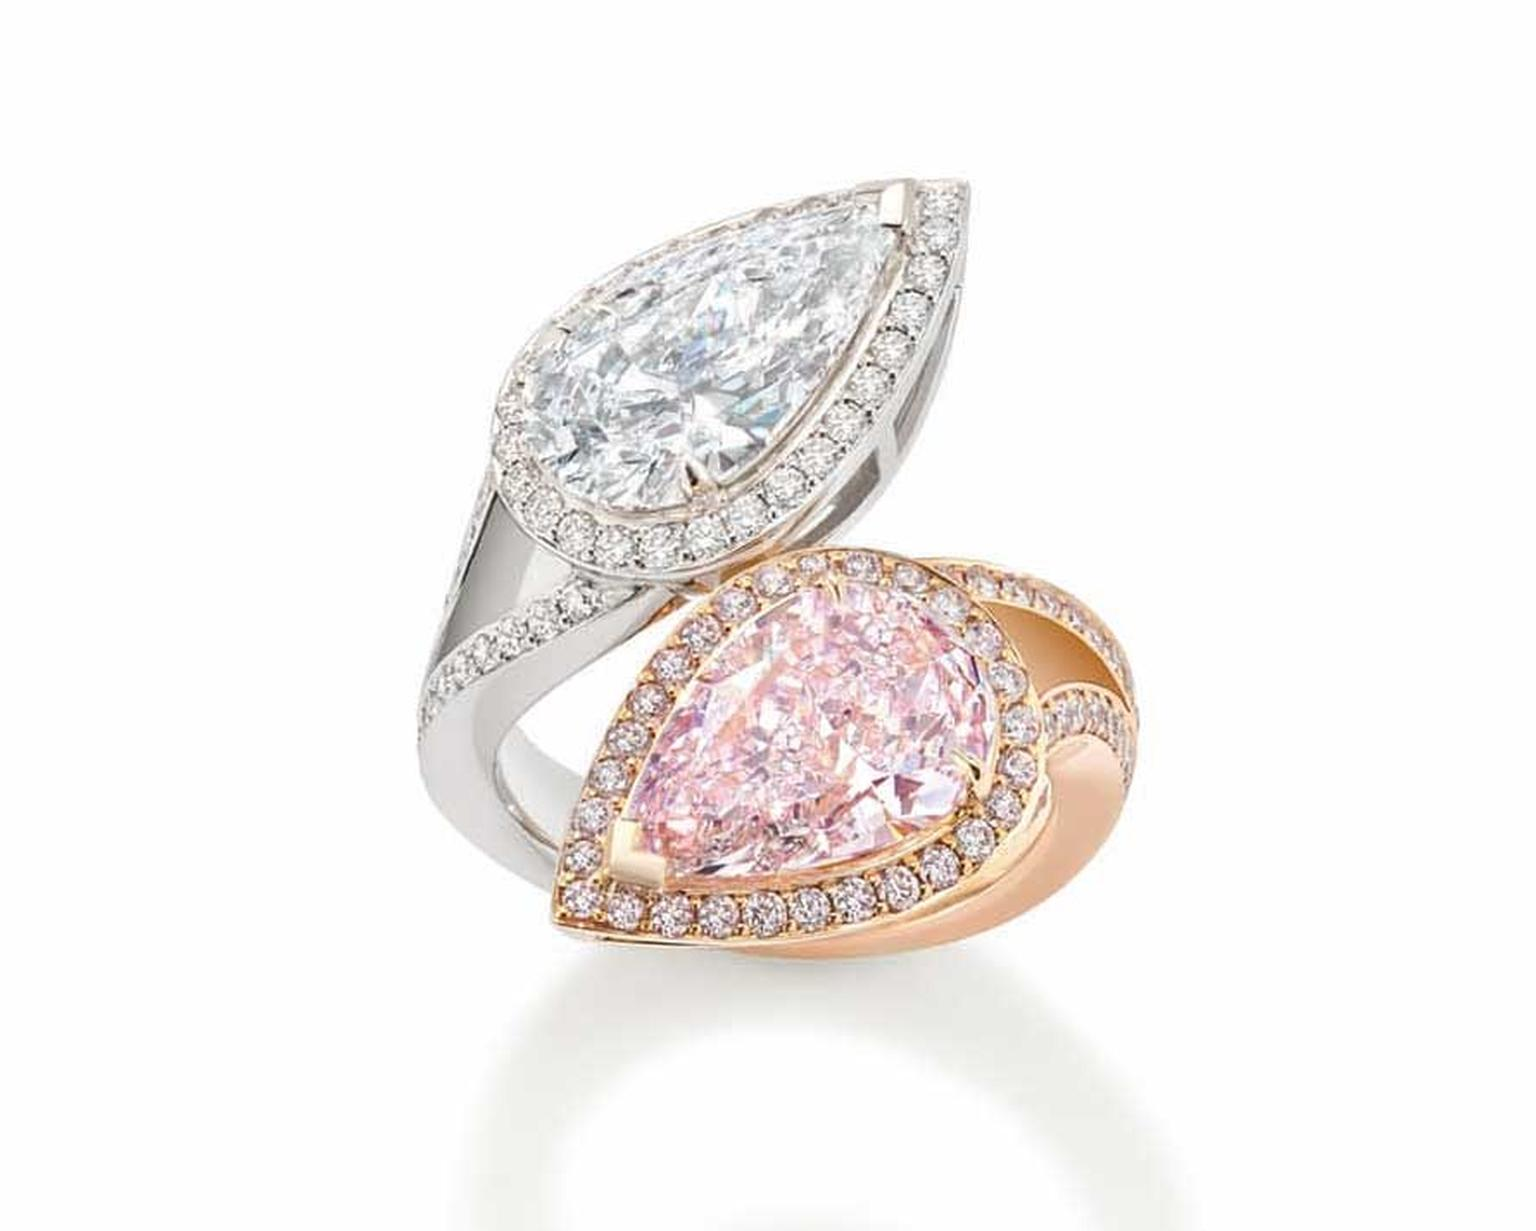 Boodles Gemini ring set with a natural light pink pear-shaped diamond, mirrored by a D colour white diamond.